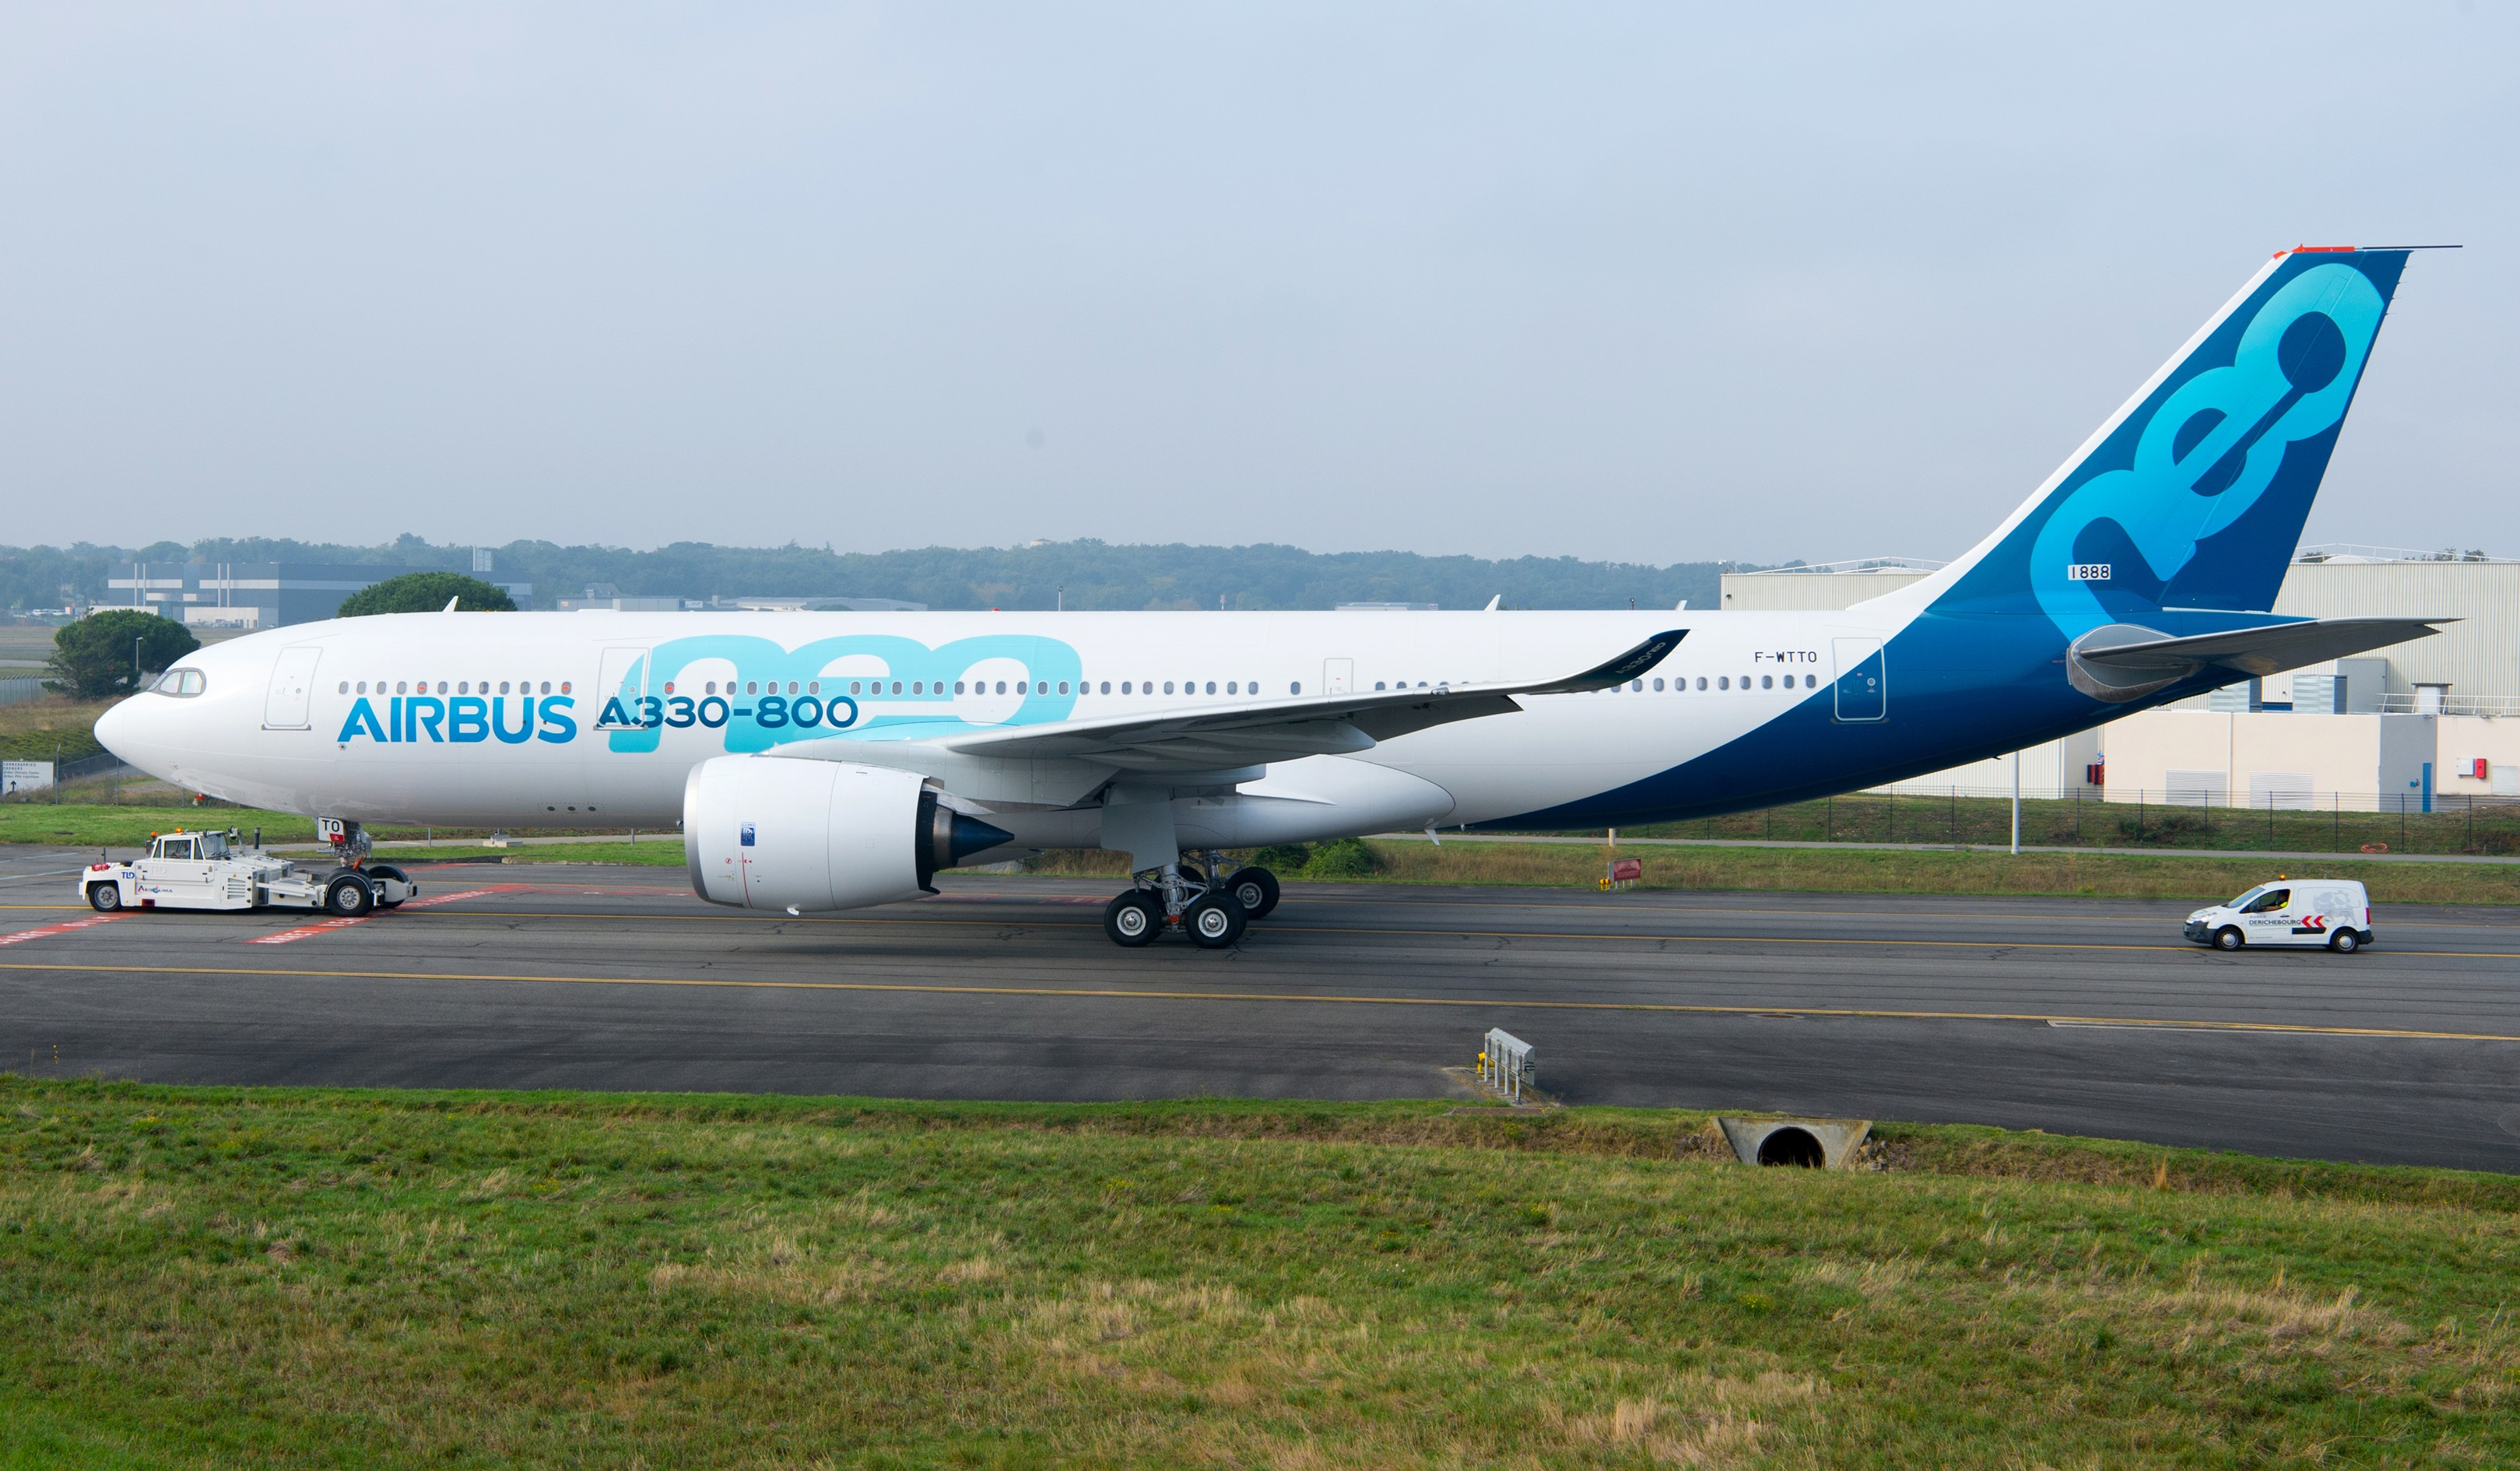 A330-800 roll out